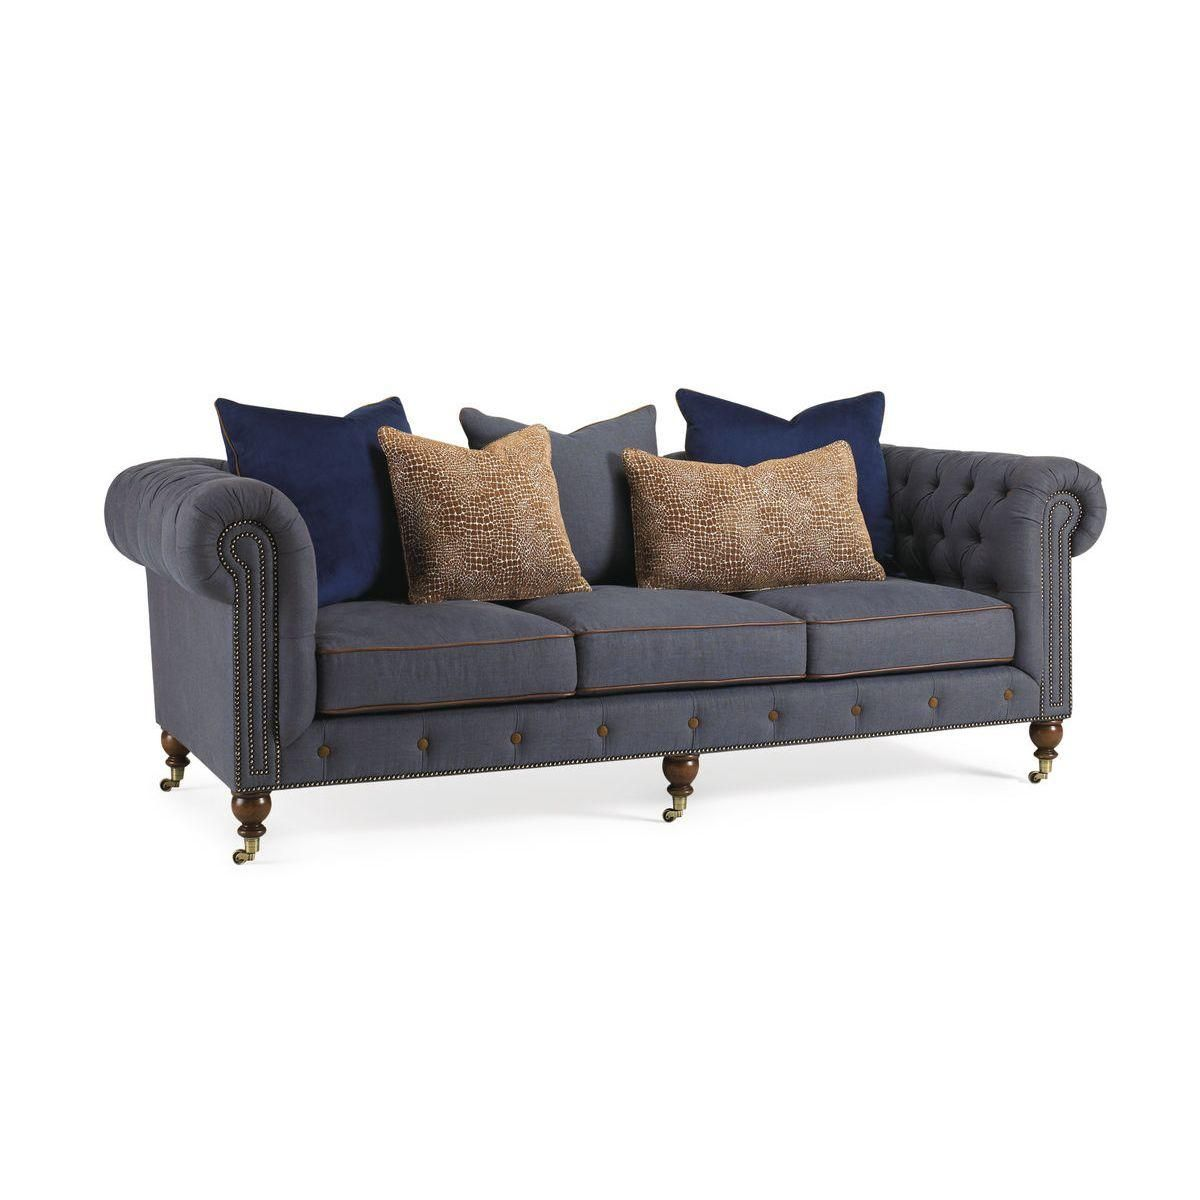 Emma Tufted Sofa What Is The Difference Between A Couch And With Wink Nod To Iconic Chesterfield